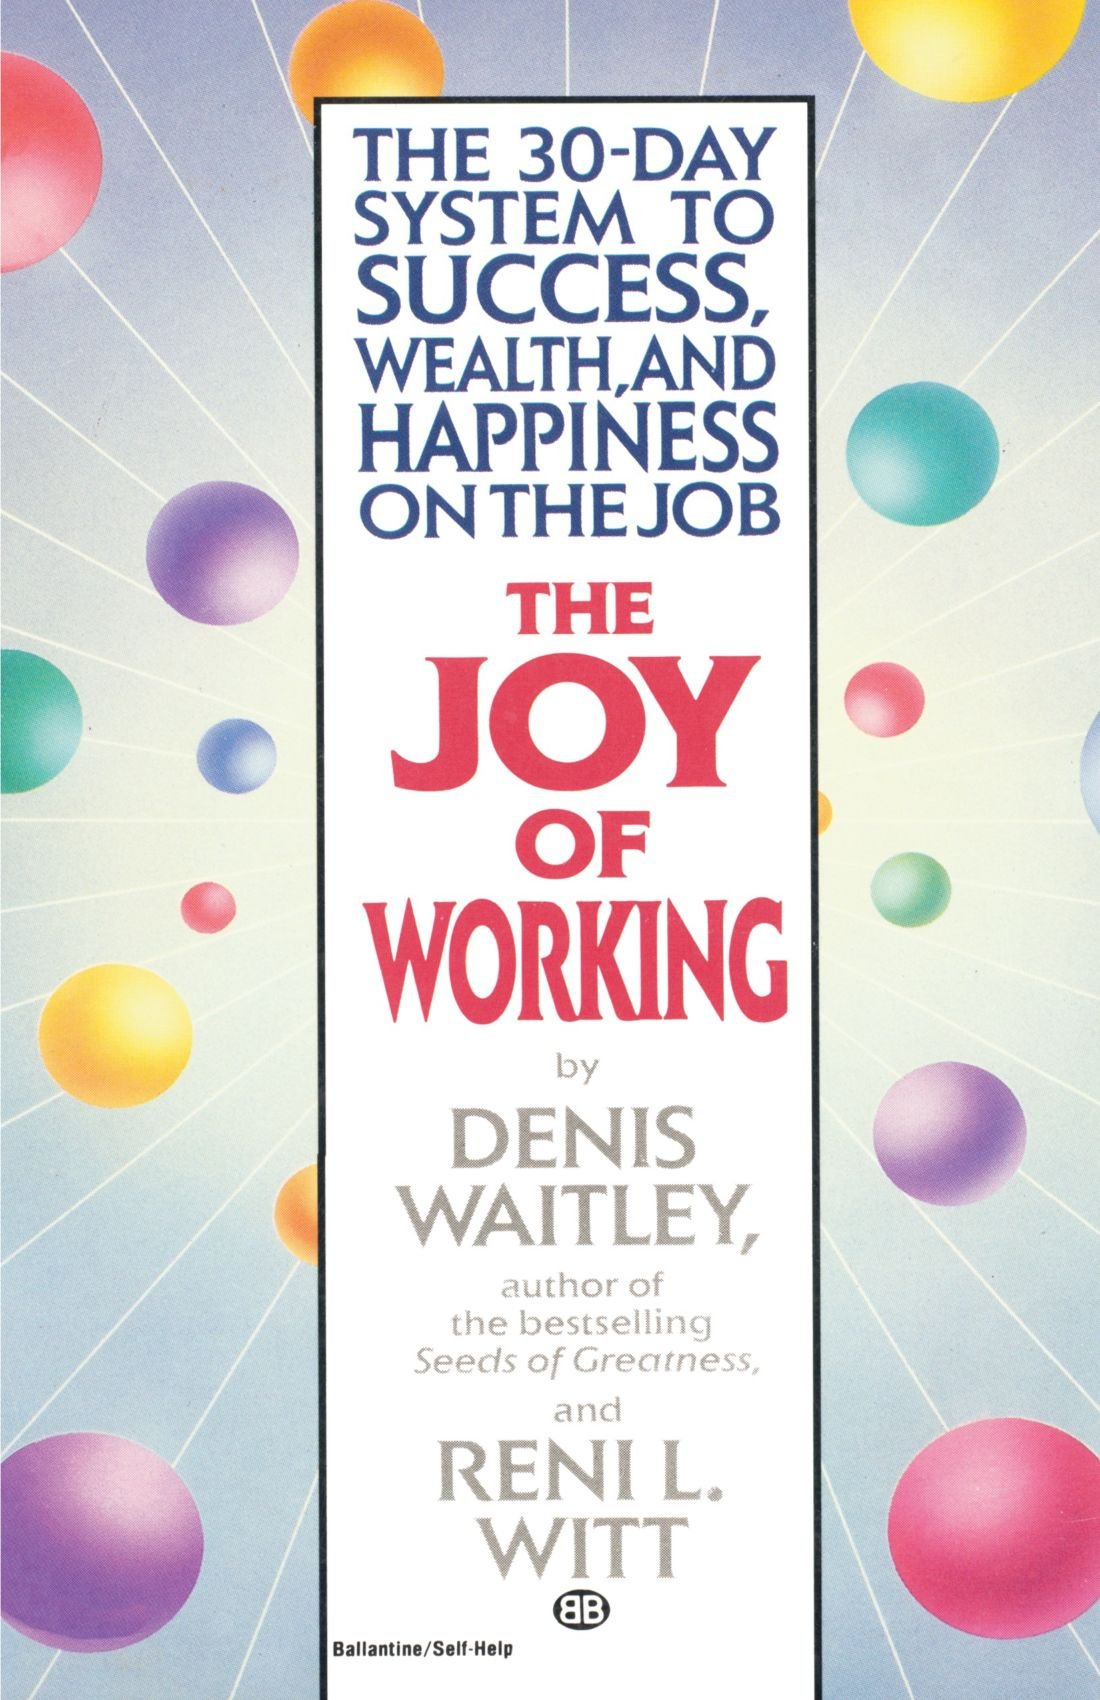 The Joy of Working: The 30-Day System to Success, Wealth, and Happiness on the Job